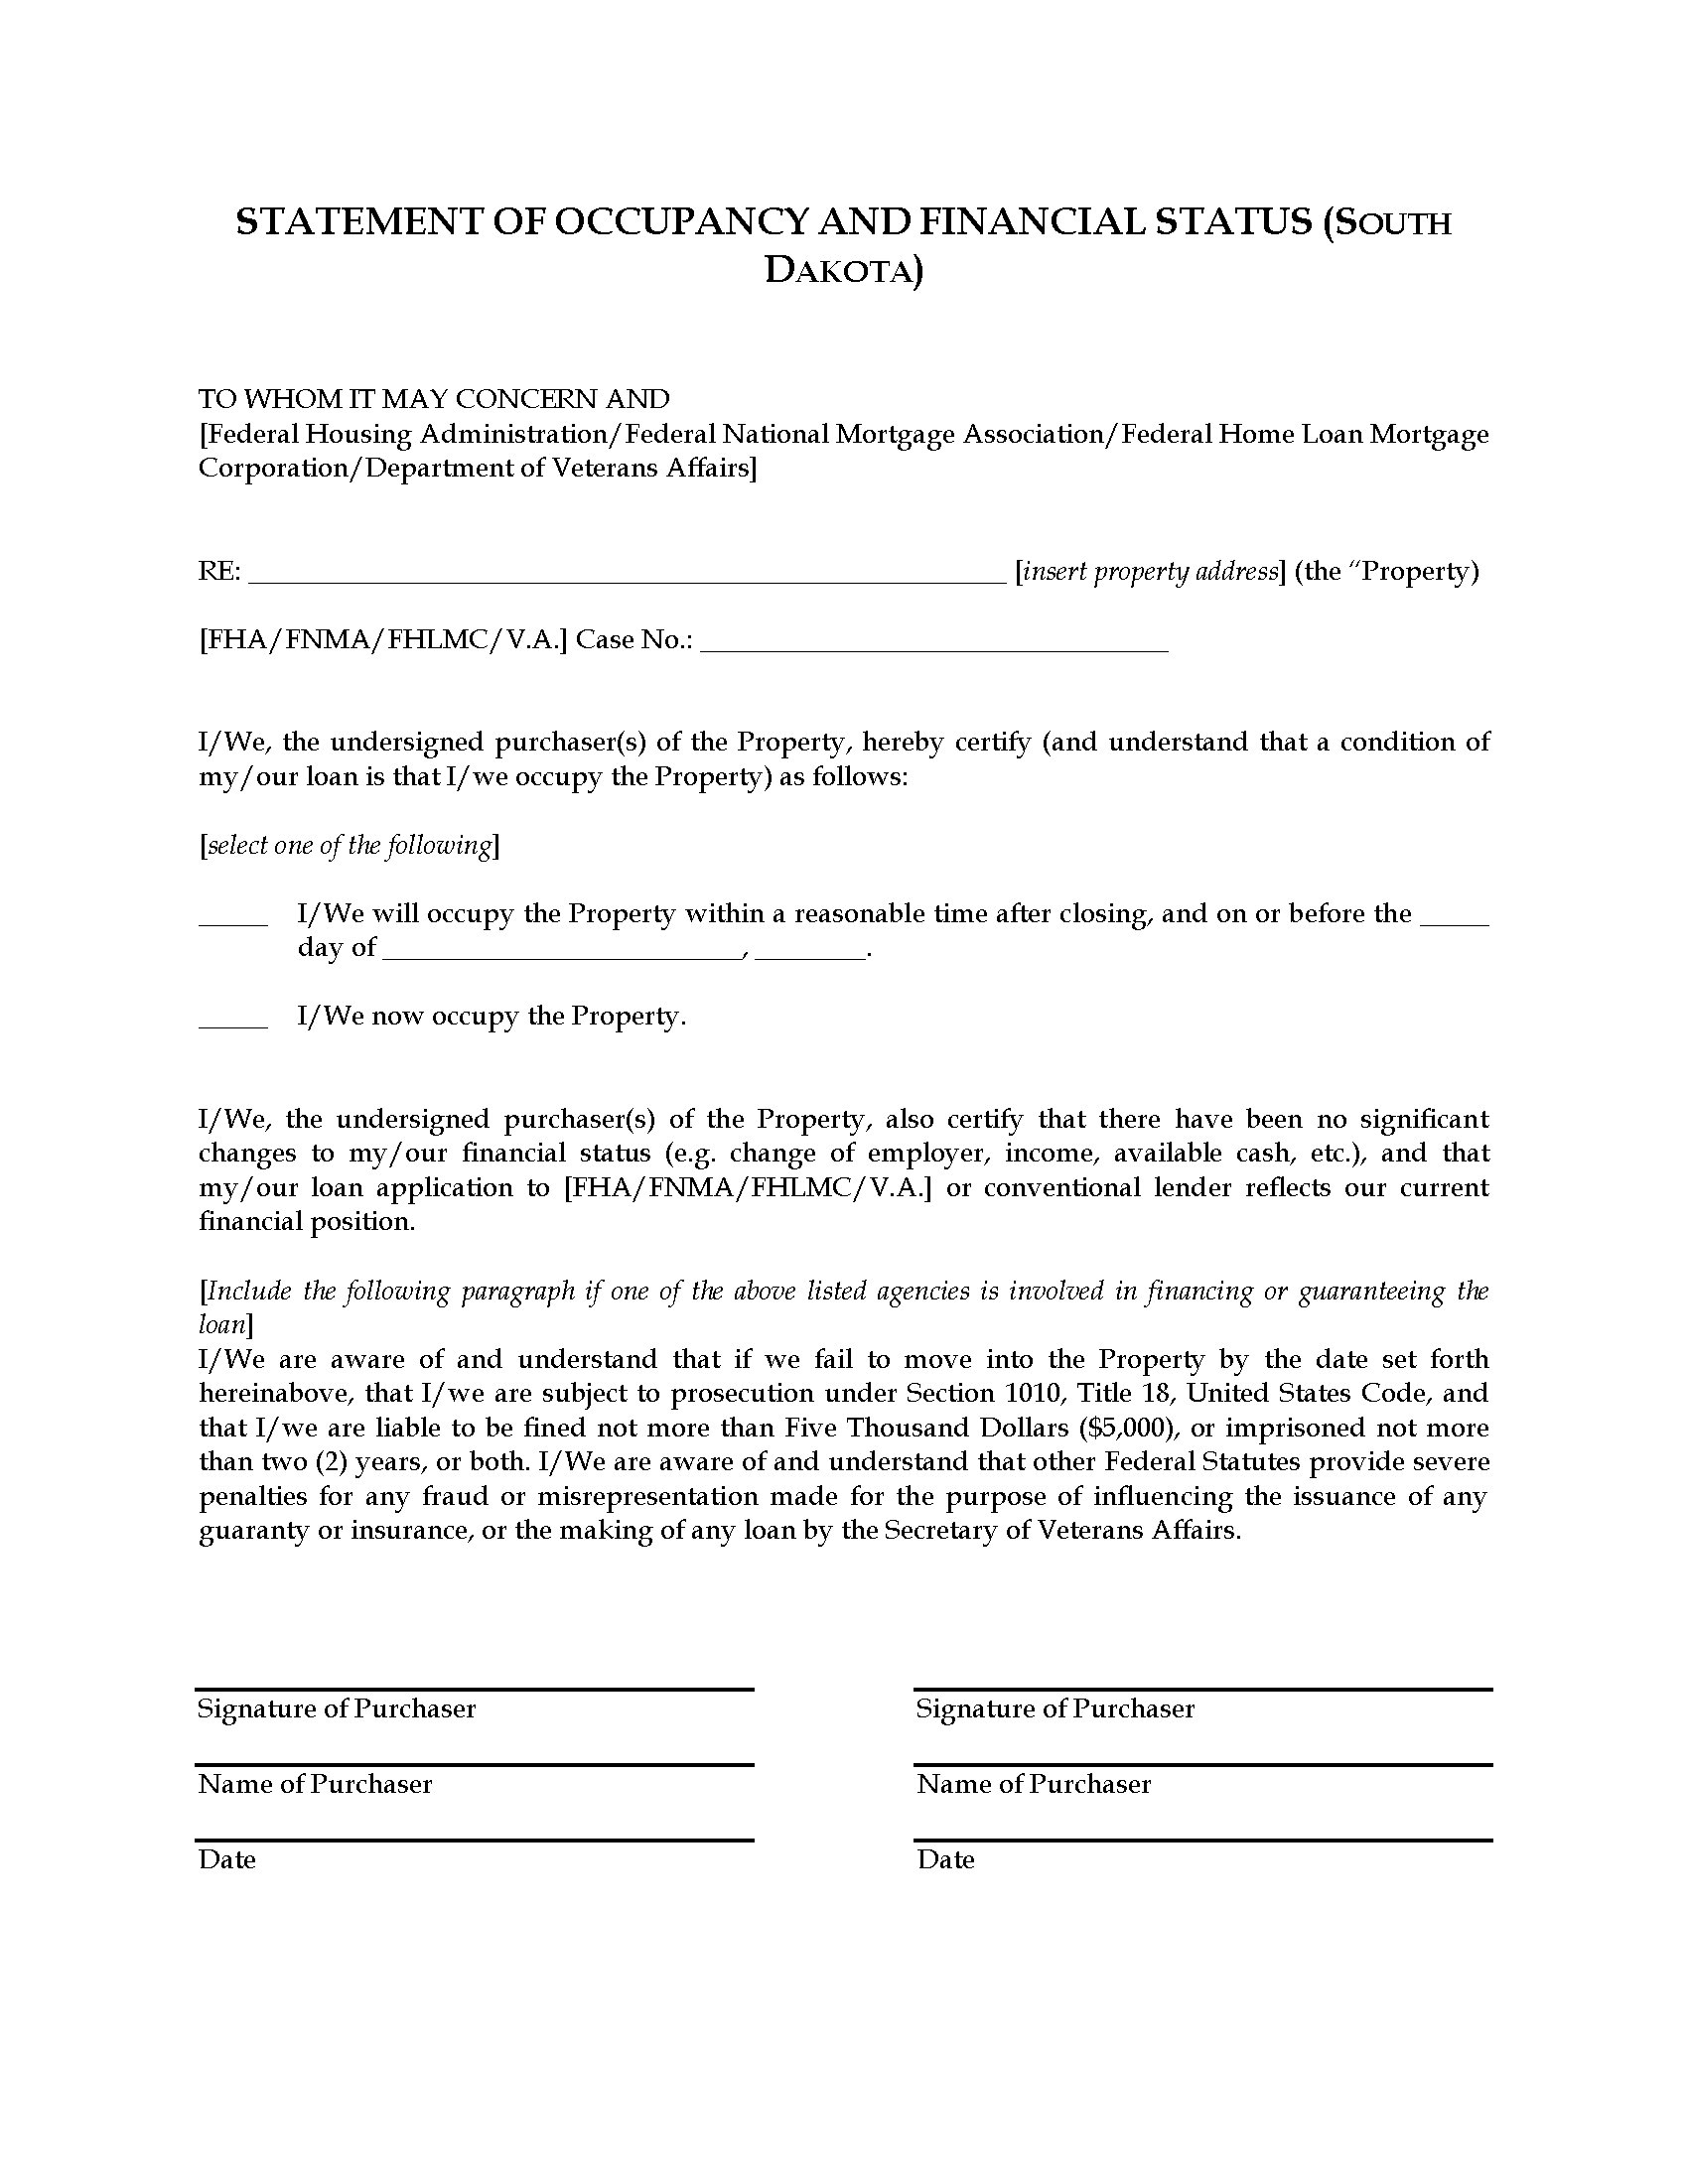 South Dakota Statement of Occupancy | Legal Forms and